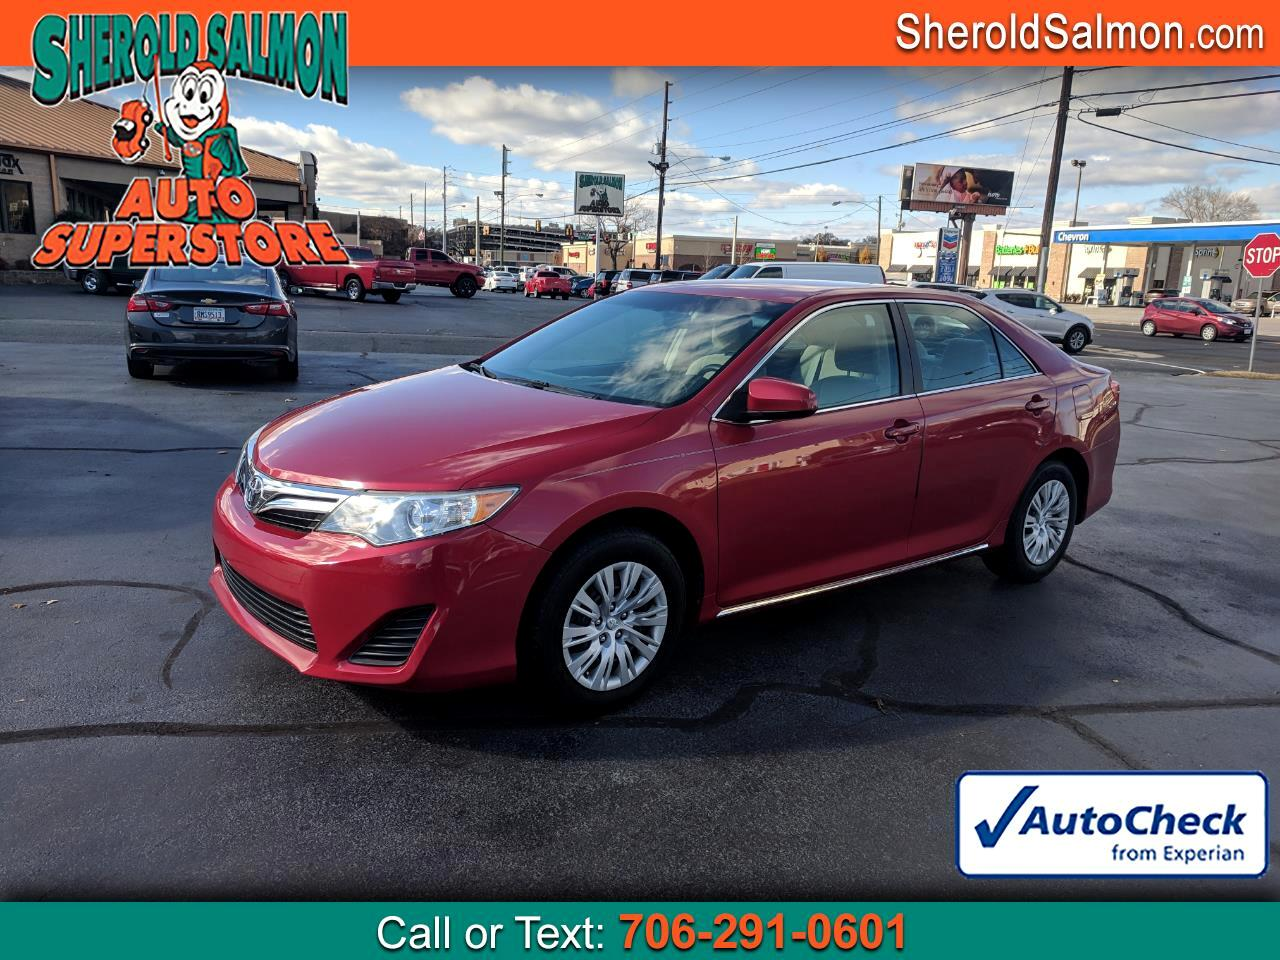 2013 Toyota Camry 4dr Sdn I4 Auto LE (Natl)